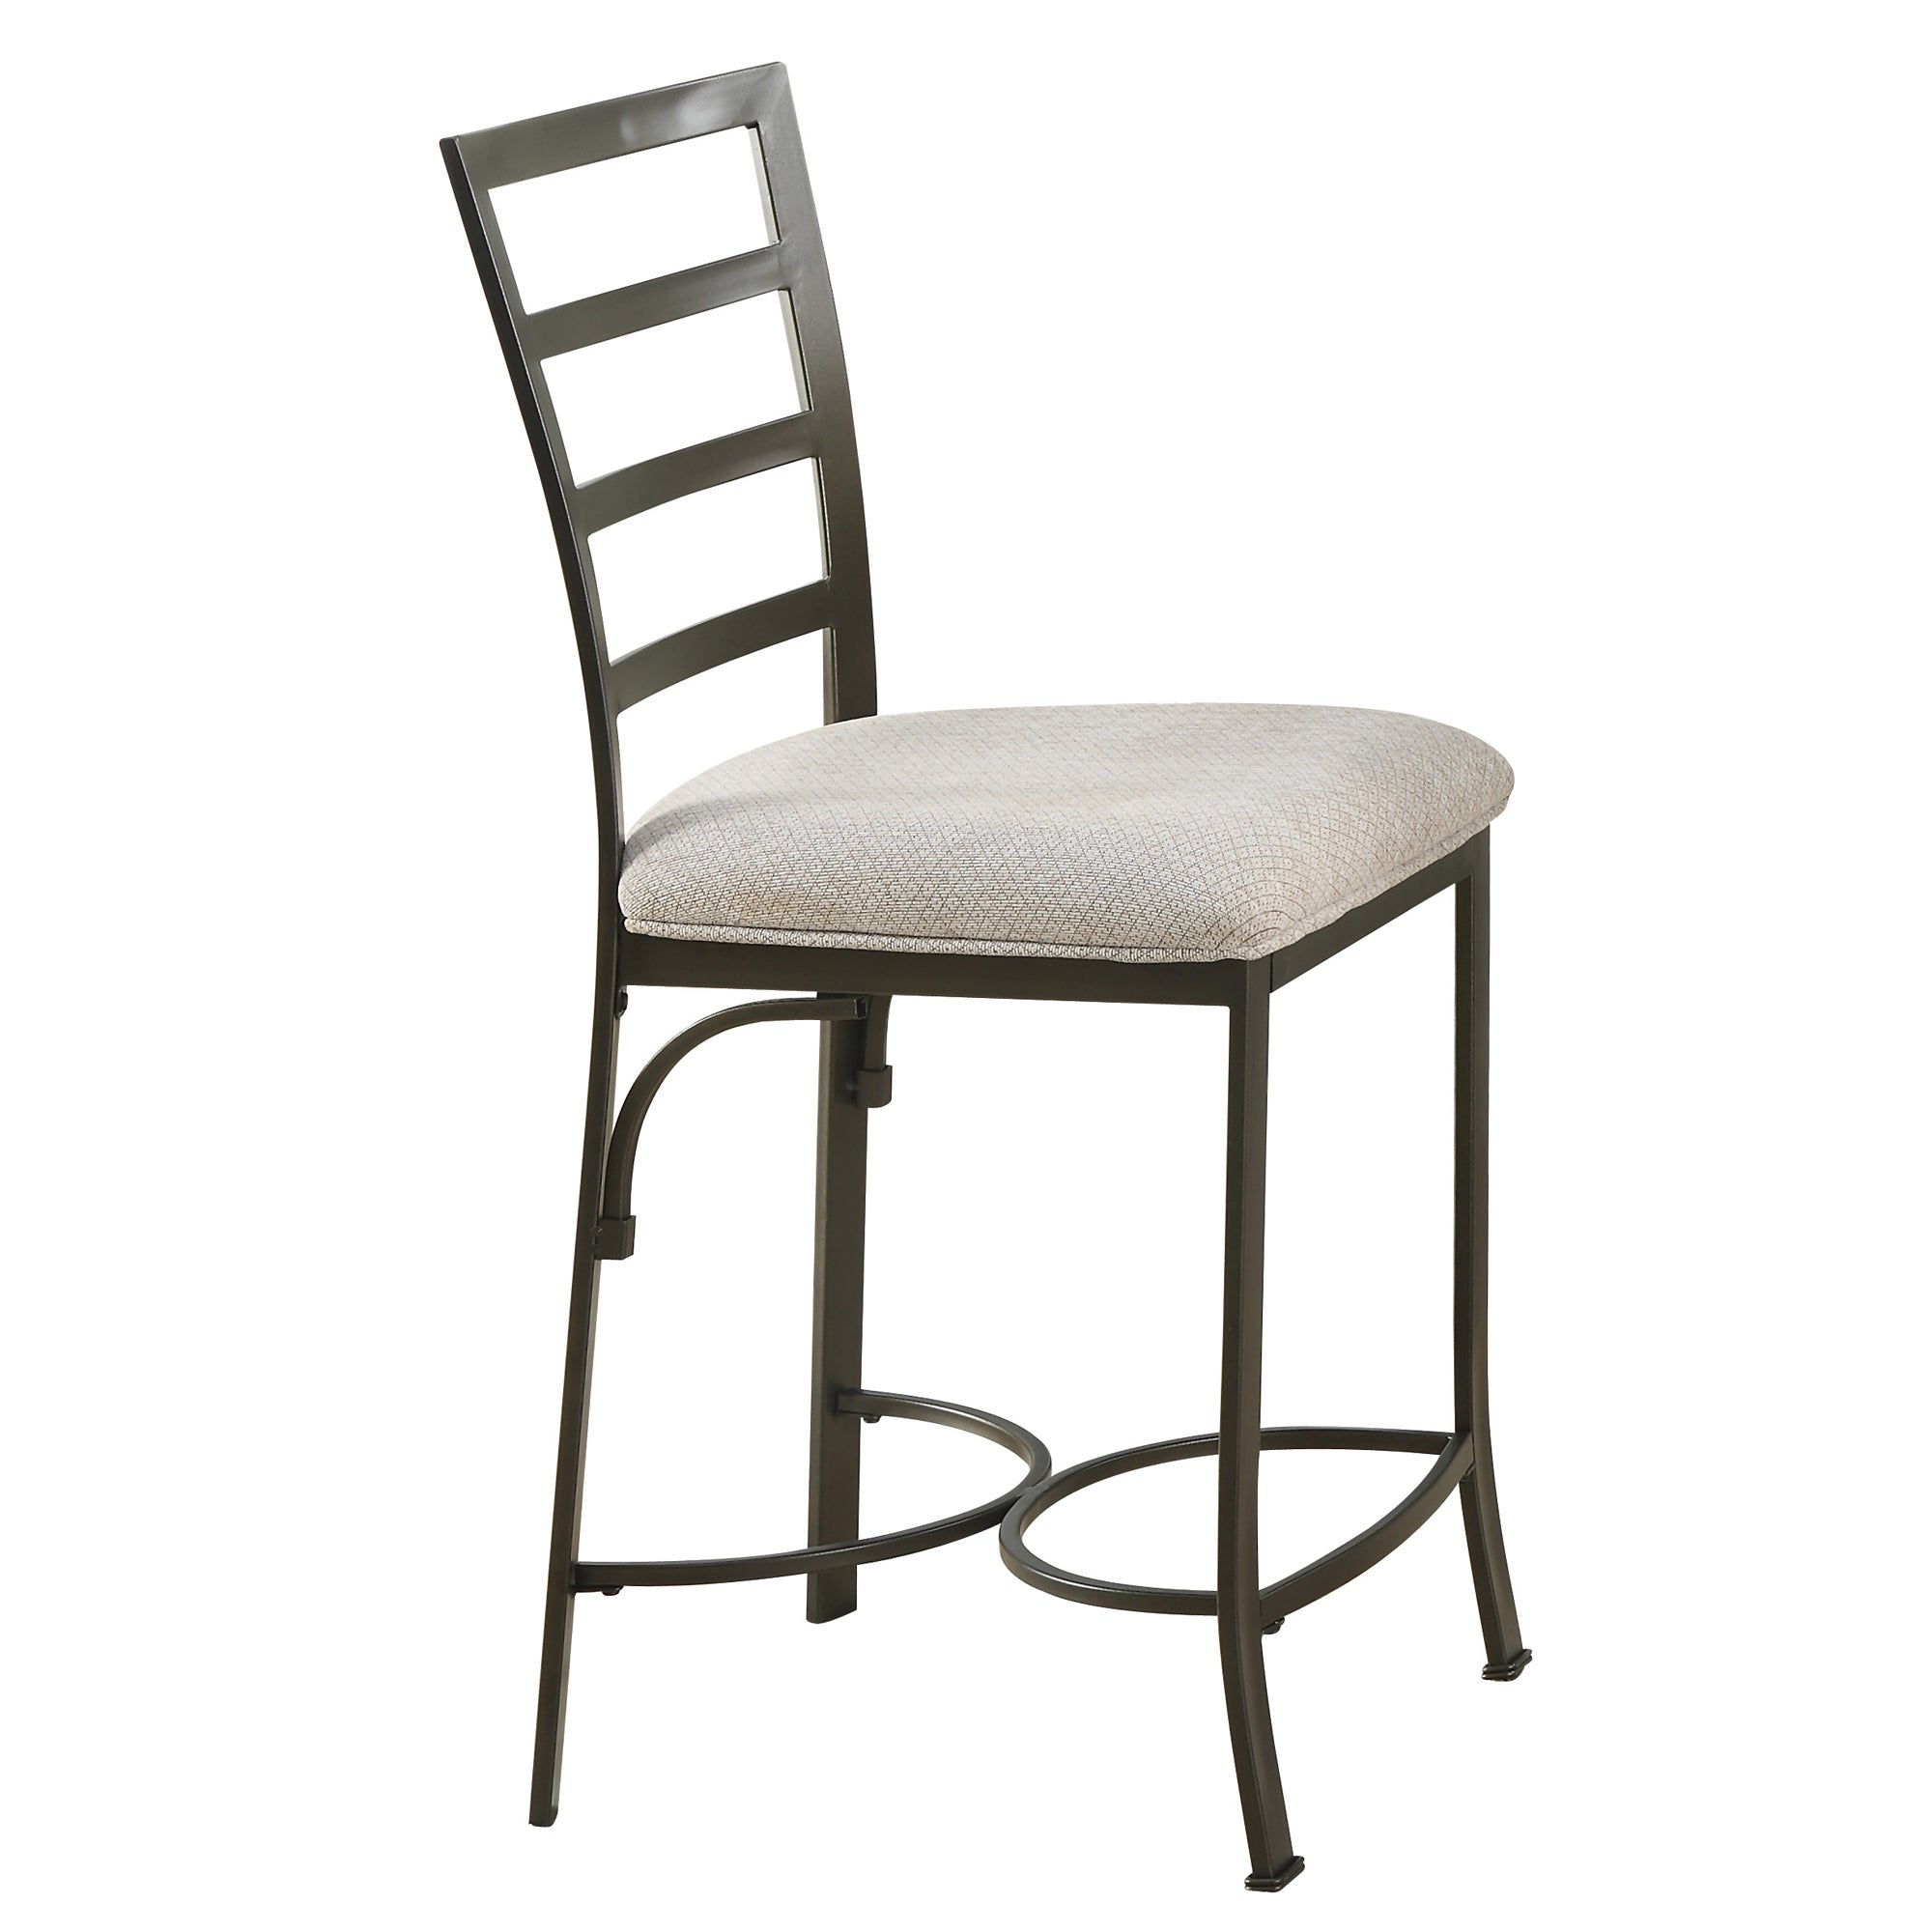 Counter Height Chairs (Set of 2) - Thumbnail 0